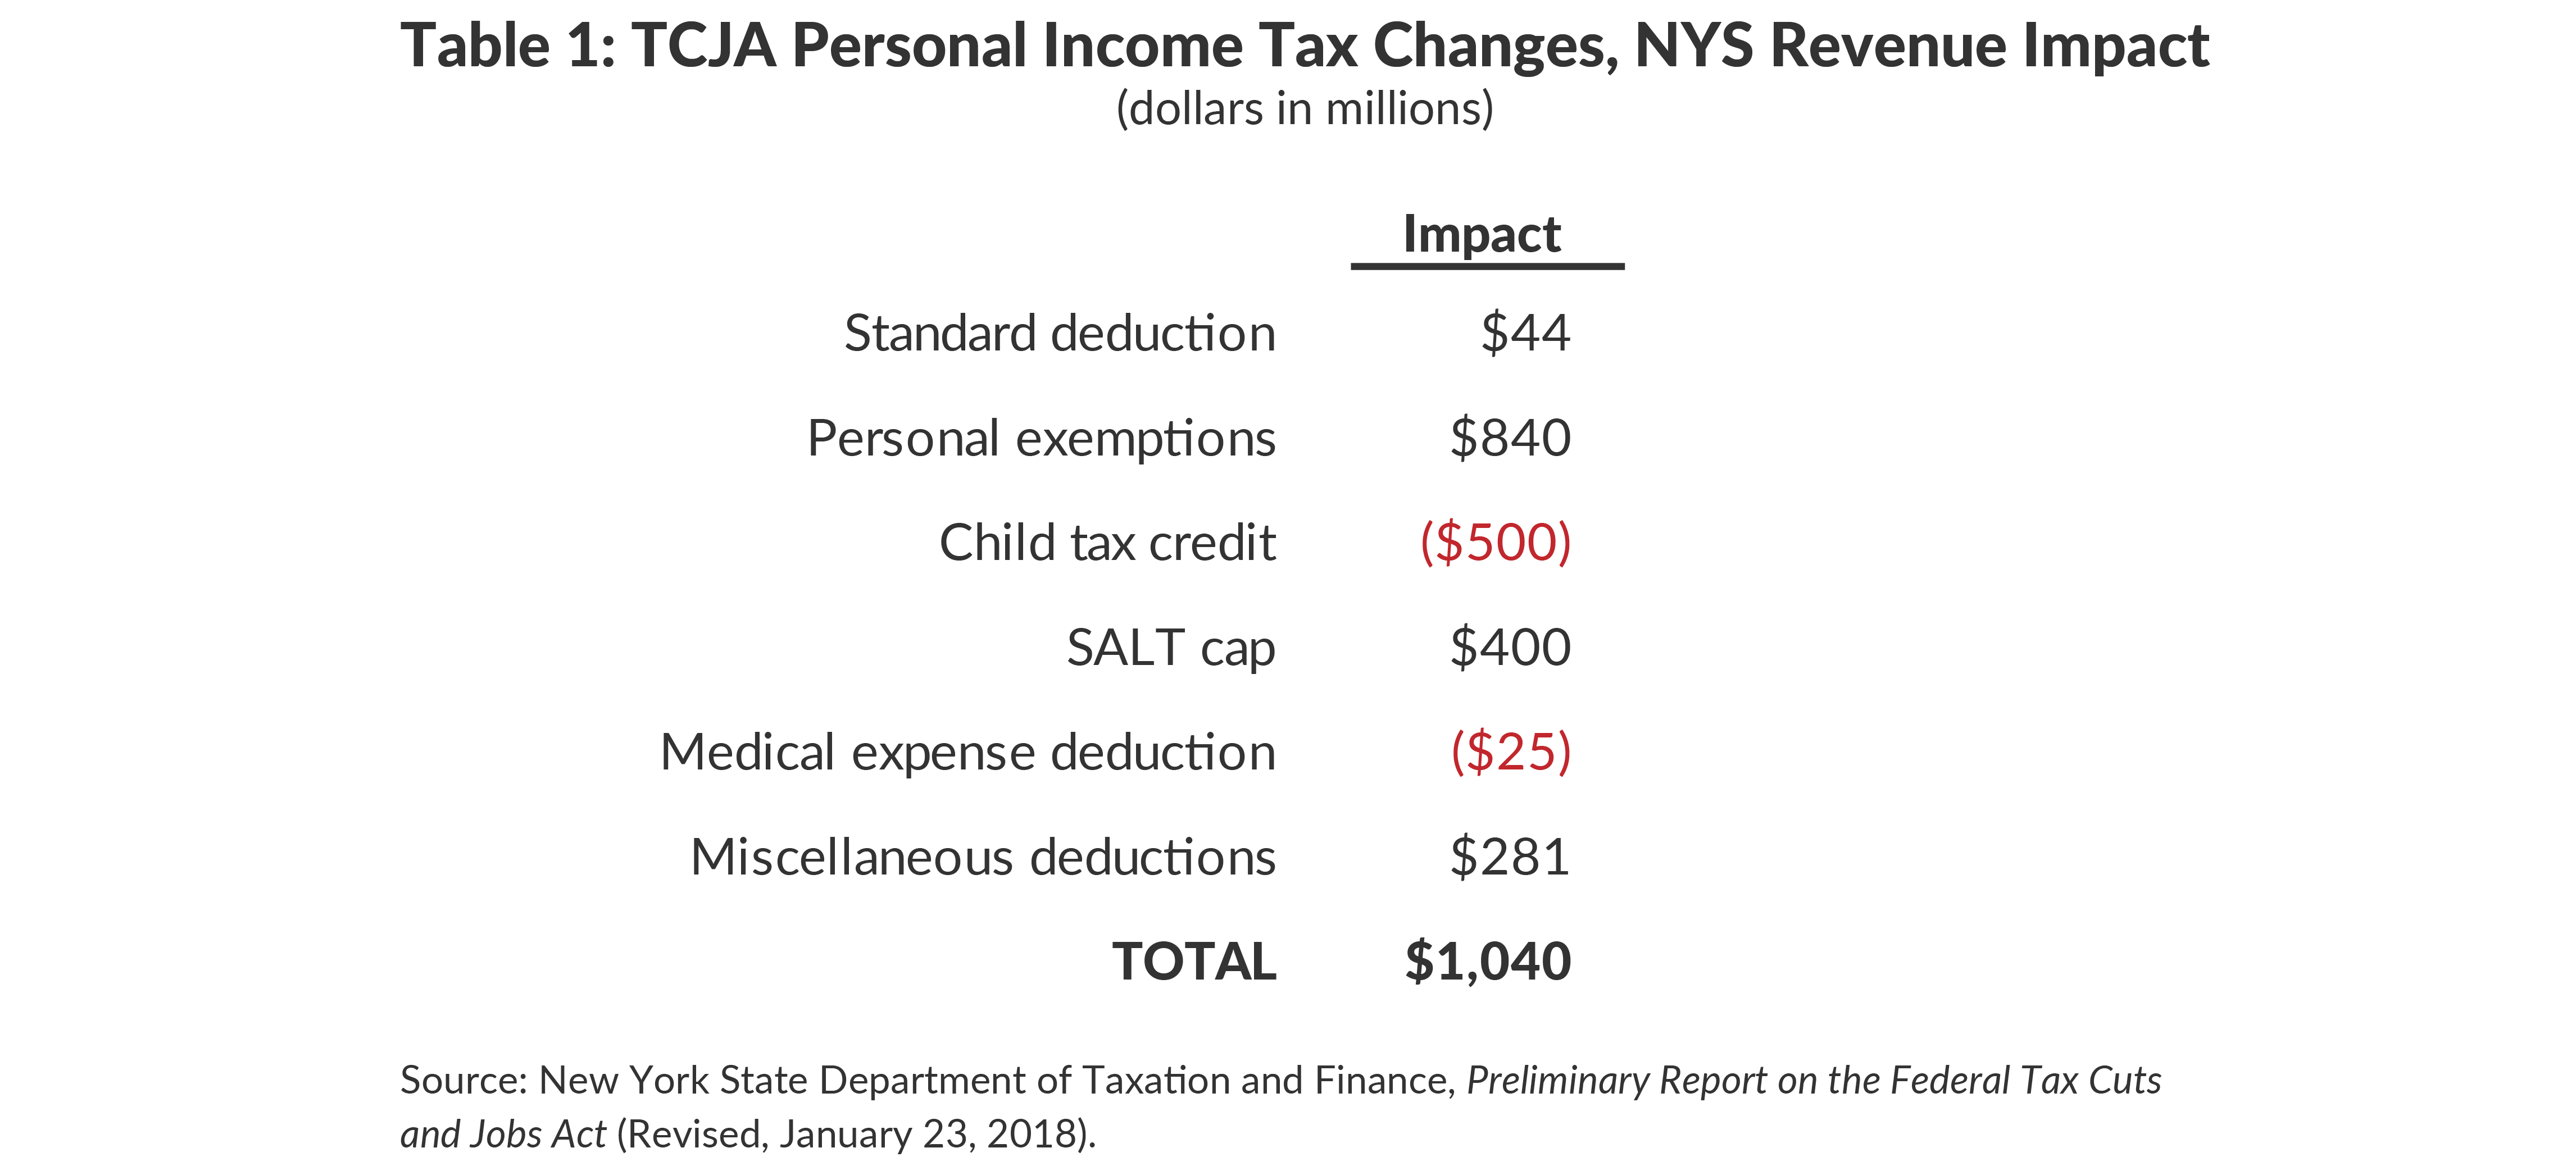 Table 1: Projected NYS Revenue Impact of TCJA Income Changes